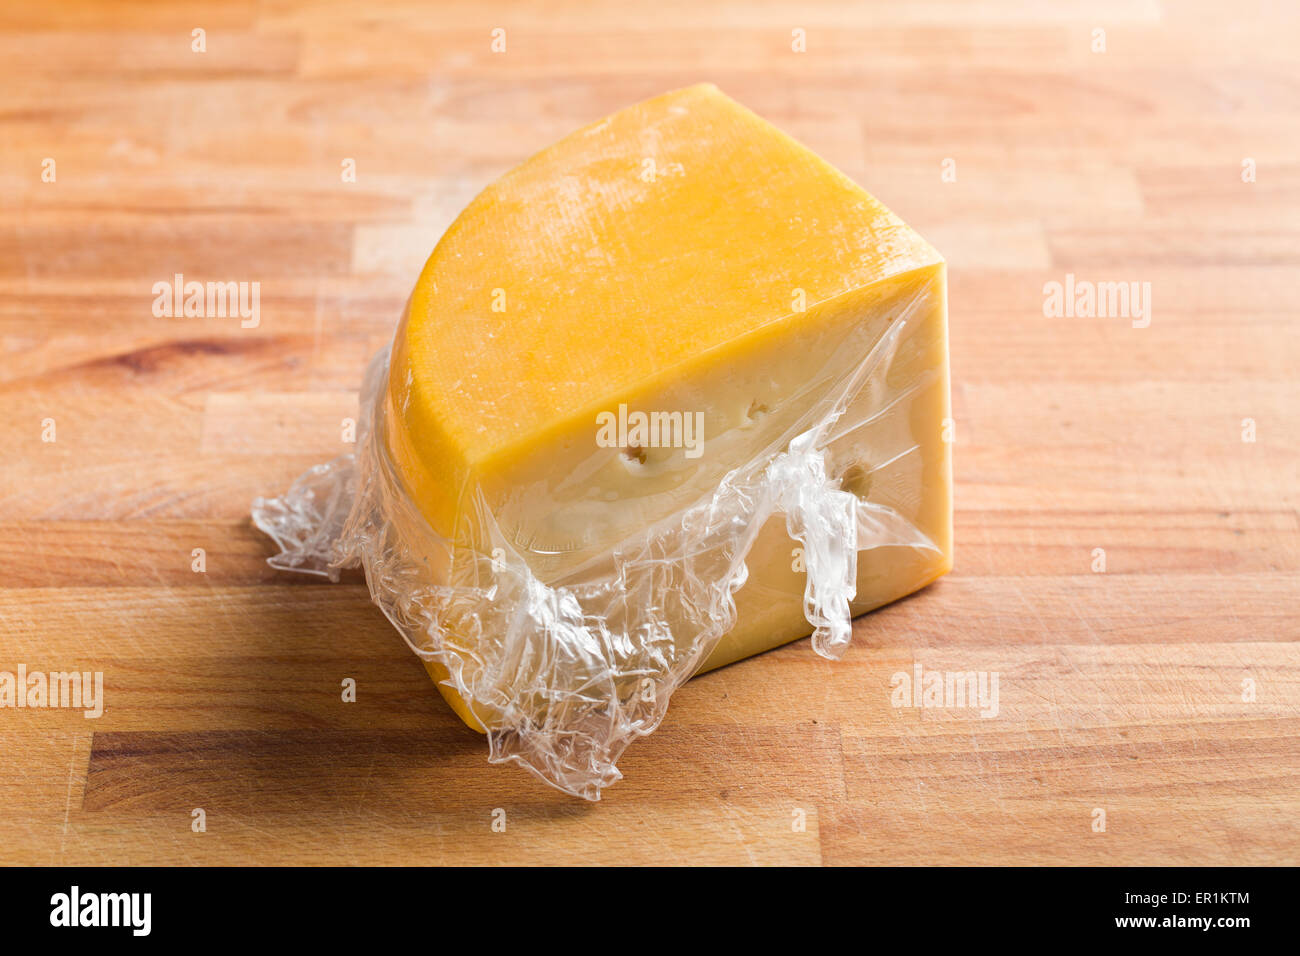 wrapped edam cheese on kitchen table - Stock Image